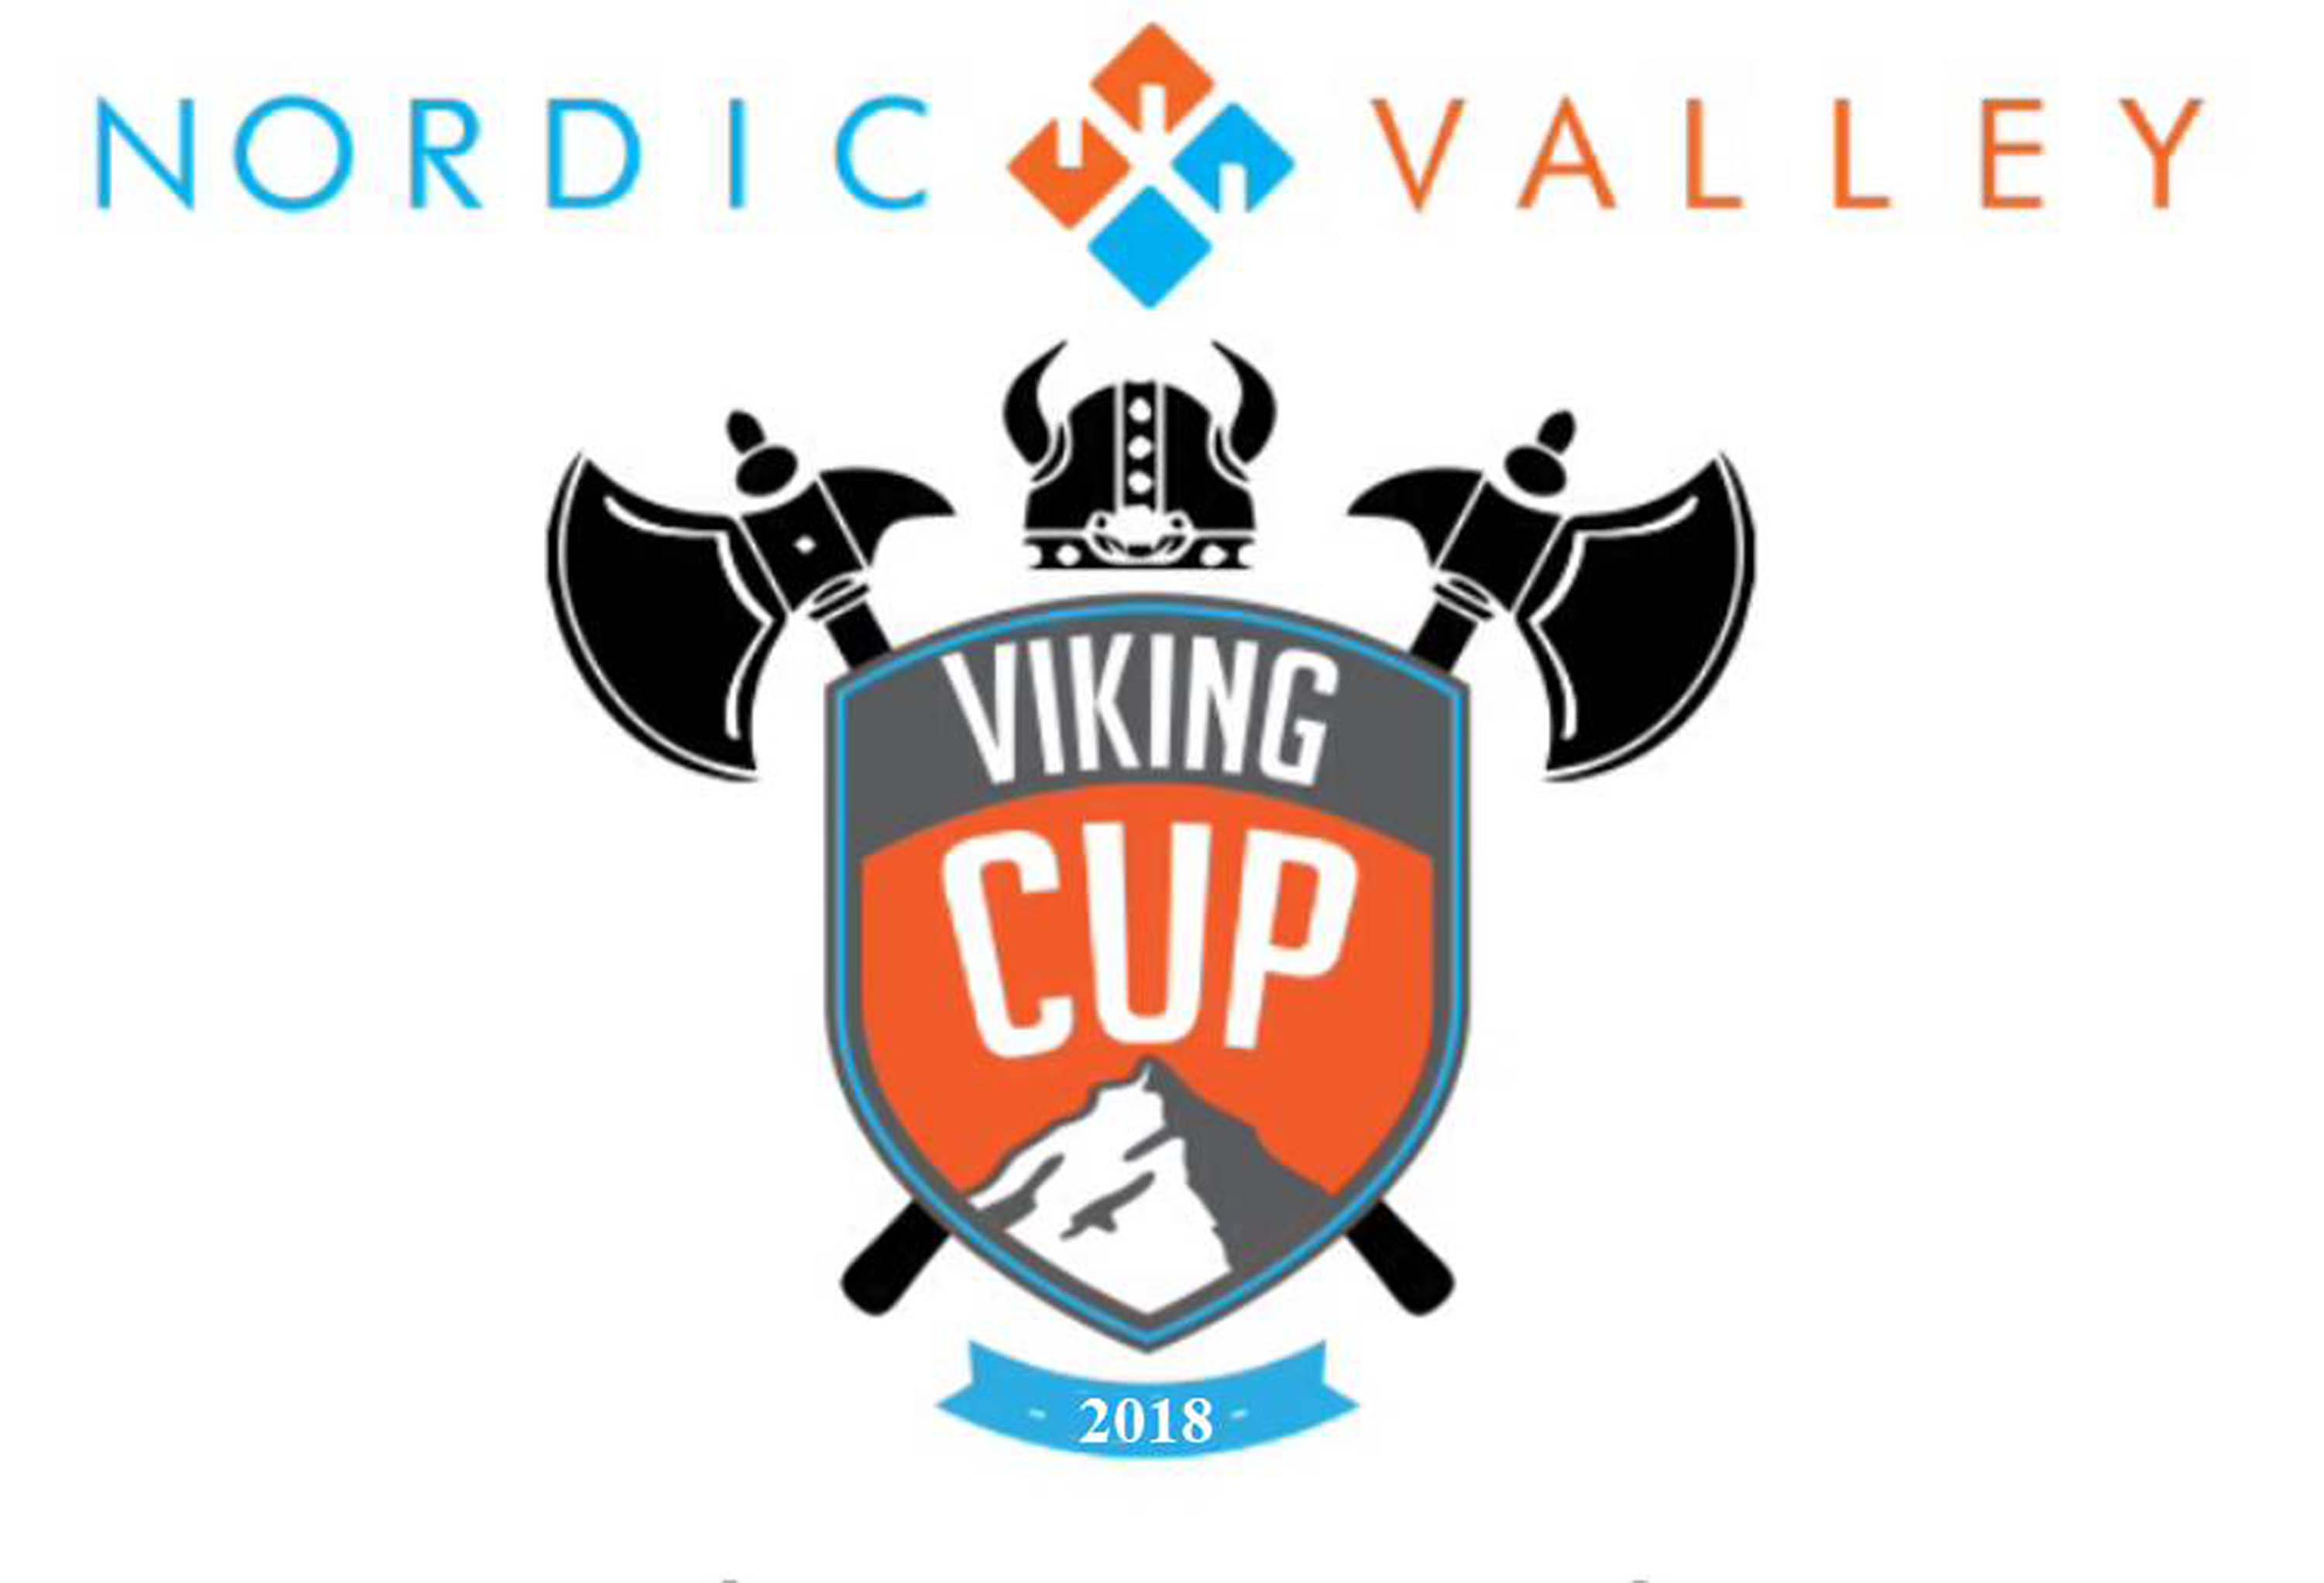 nordic valley viking cup